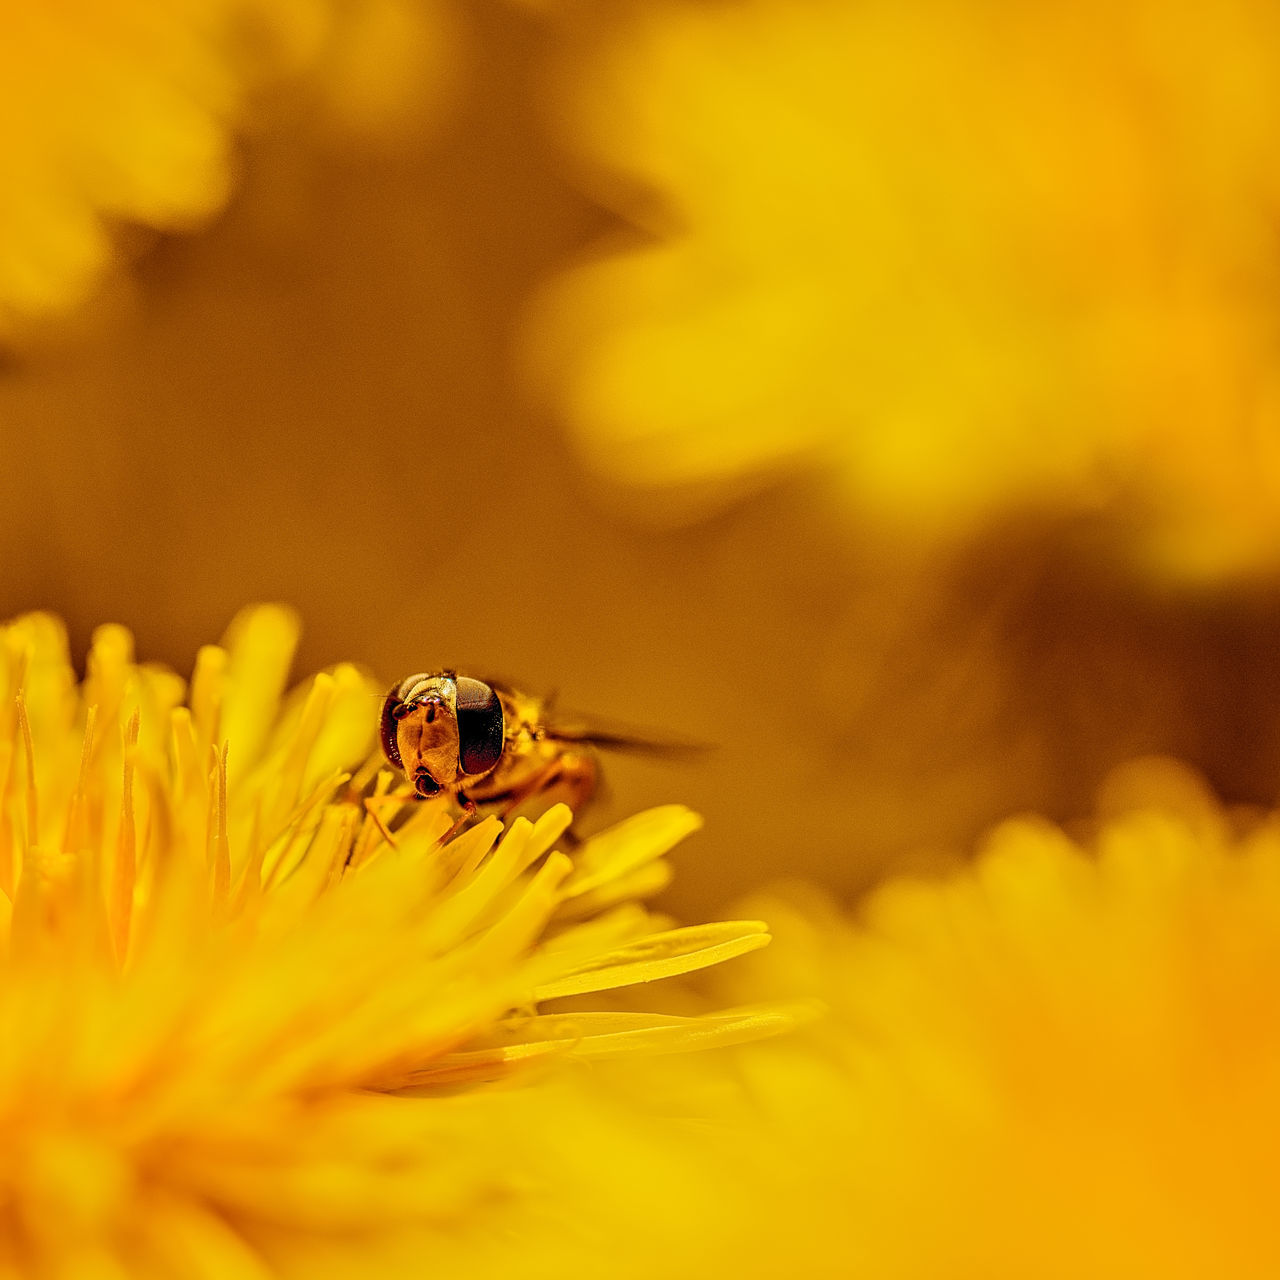 Beauty In Nature Bee Day Flower Flower Head Nature Outdoors Plant Selective Focus Yellow